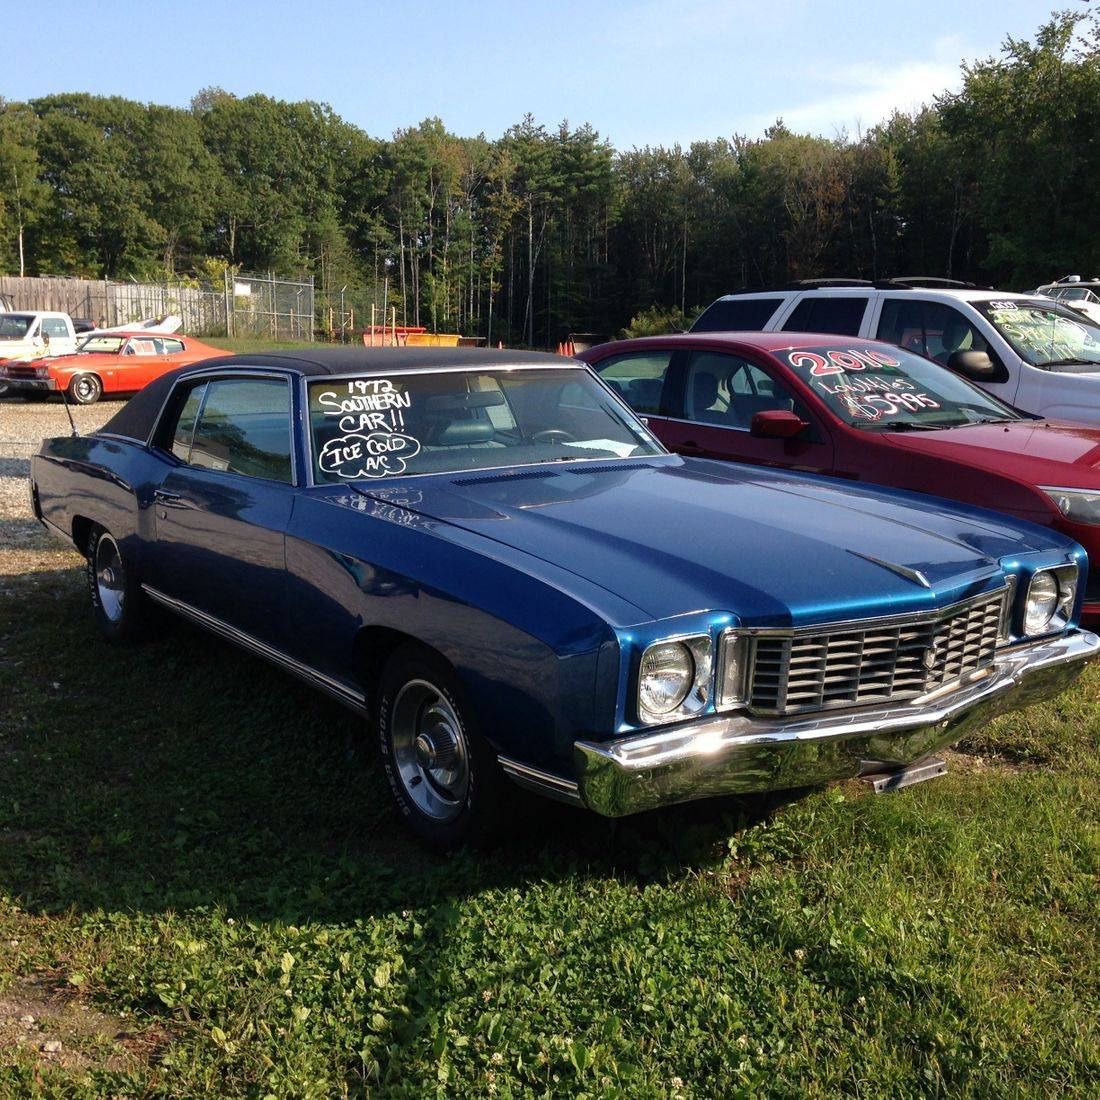 1972 Monte Carlo, camaro, corvette, old corvette, car show, longhorn, 55 chevy,  performance dodge, harley parts, cheap cars, suv, used cars near me, mechanic near me,  oil change near me, auto repair near me,  car inspection near me, car inspection, mechanics, mechanics near me,  inspection sticker, NH sticker, NH inspection sticker, New hampshire inspection sticker, vehicle inspection near me, auto inspection,  bmw, honda motorcycles, cycle trader, yamaha motorcycles, mustang, ford mustang, bmw motorcycles, motorcycle sticker, indian motorcycles, roadside assistance, towing near me, tow truck near me, tow company near me, tow company, towing service, towig service near me, engine repair, transmission, transmission repair, radiator repair, air conditioner repair, exhaust repair, a/c repair, front end repair, exhaust repair near me, radiator repair near me, ac repair, car ac,  buy tires, tire repair, tire repair near me, tires and wheels, wheels and tires for sale, jeep, jeeps for sale, jeeps for sale near me, used jeeps for sale, used jeeps for sale near me, jeep repair, jeep repair near me, jeep wrangler for sale, jeep cherokee, jeep yj, jeeps yj for sale, jeep wrangler, used jeep wrangler for sale, lifted jeep, lifted jeeps, lifted jeeps fpr sale, jeep cj, jeep tj, ford for sale, chevy for sale, dodge for sale, chevelle for sale, chevelle, masters delux, masters deluxe, bel air, covertable for sale, impala for sale, ford galaxy 500, ford galaxy,  ford galaxie, ford galaxie 500, 1955 chevy, burnout, burnouts, burn out, 1972 vette 454, 454, chevy big block, big block chevys, chevy big blocks, camaro rs-ss, camaro rsss, drag cars, dragcar, drag car, classic car show, jump start, locked out,  Sales and service shop Brentwood NH, Sales and service shop, sales and service, car trouble, repair shop, automotive, car sales, trucks for sale, truck sales, cars for sale, motorcycle repair, motorcycle sales, motorcycles for sale, 4x4 for sale, plows for sale, campers for sale,  Brentwood NH, New Hampshire, cars dealerships Brentwood NH, car dealership Brentwood NH, cars Brentwood New Hampshire, trucks Brentwood NH, Antique cars New Hampshire, classic cars New Hampshire, dealerships near me, used car lot, used car lots, used car dealers, used car dealer, used cars near me,  Cars NH, oil change, 03833, used car, used cars, car, cars, sale, auto, autos, vehicle, dealer, classic cars NH, antiques NH, Inspection station NH, Inspection Brentwood NH, automotive shop Brentwood NH,  autos for sale NH, oil change NH, car tune up NH, family owned dealership, family owned car lot, family owned service shop, service shop, shop, state inspection, NH state inspection, Inspection station, state inspection NH, motion performance, motion performance NH, motion performance LLC,  mechanic, brakes, mechanics, transmissions, auto shop Brentwood, auto shop, transmission problem, brake repair, vehicle, auto, used car, preowned, pre owned, preowned car, used plow, used truck, used motorcycle, old cars, old trucks, automobile, dealer, dealer ship, Motion LLC, Motion, Performance, MP LLC, motionperformance, motionperformancellc, should I buy a used car?, buy a used car, buy a used motorcycle? Exeter used cars, Brentwood used cars, NH used cars, NH dealers, NH, affordable car, buy here pay here, payment on car, chevy car, chevy truck, Harley Davidson, Ford, Buick, Chrysler, used chevy, used 4x4, cheap car, cheap truck, cheap motorcycle, tow, tow truck, towing, 24 hour towing, car inspection, where car I get my car inspected?, where can I get my truck inspected?, where can I my motorcycle inspected?, where can I get my motorcycle inspected, where can I get my car inspected, NH inspections, commercial vehicle, CDL, New car inspection, engine, rebuild, custom, car restoration, antique restoration, truck restoration,